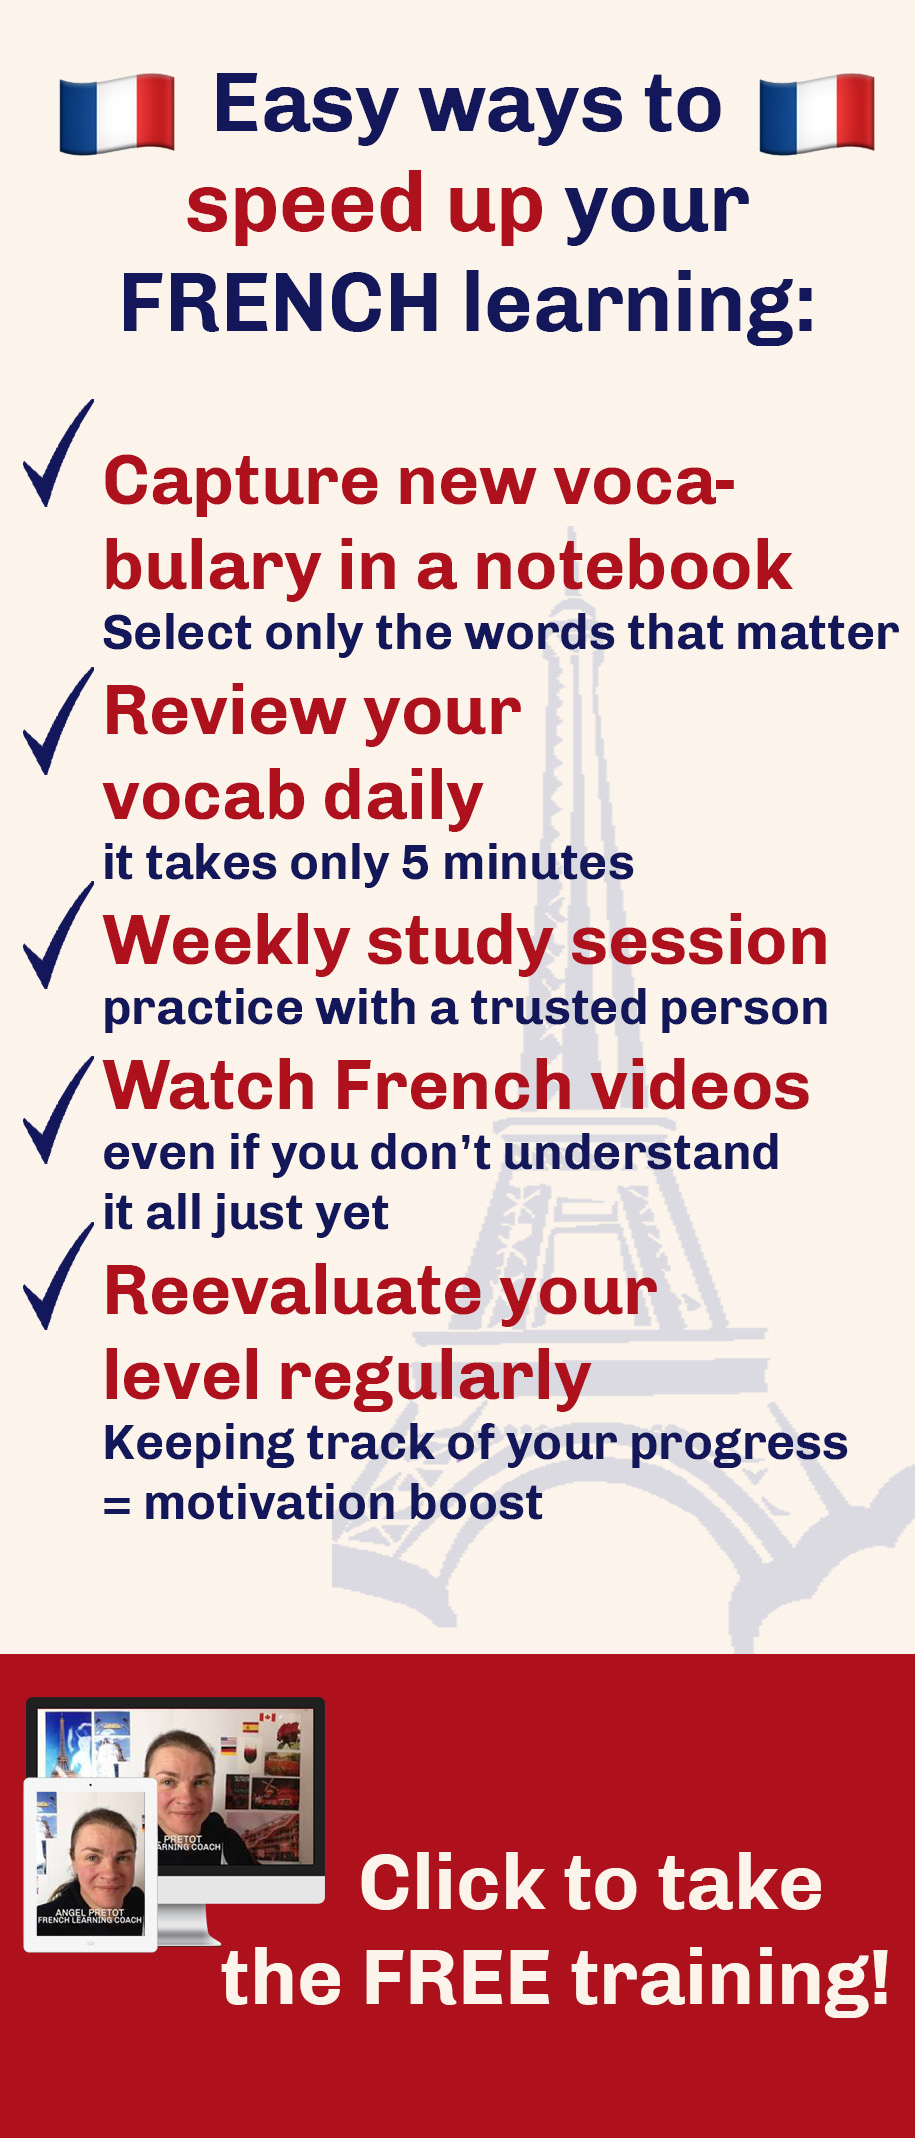 Learning French shouldn't take a lot of time. This free training will show you how you too can learn French fast.